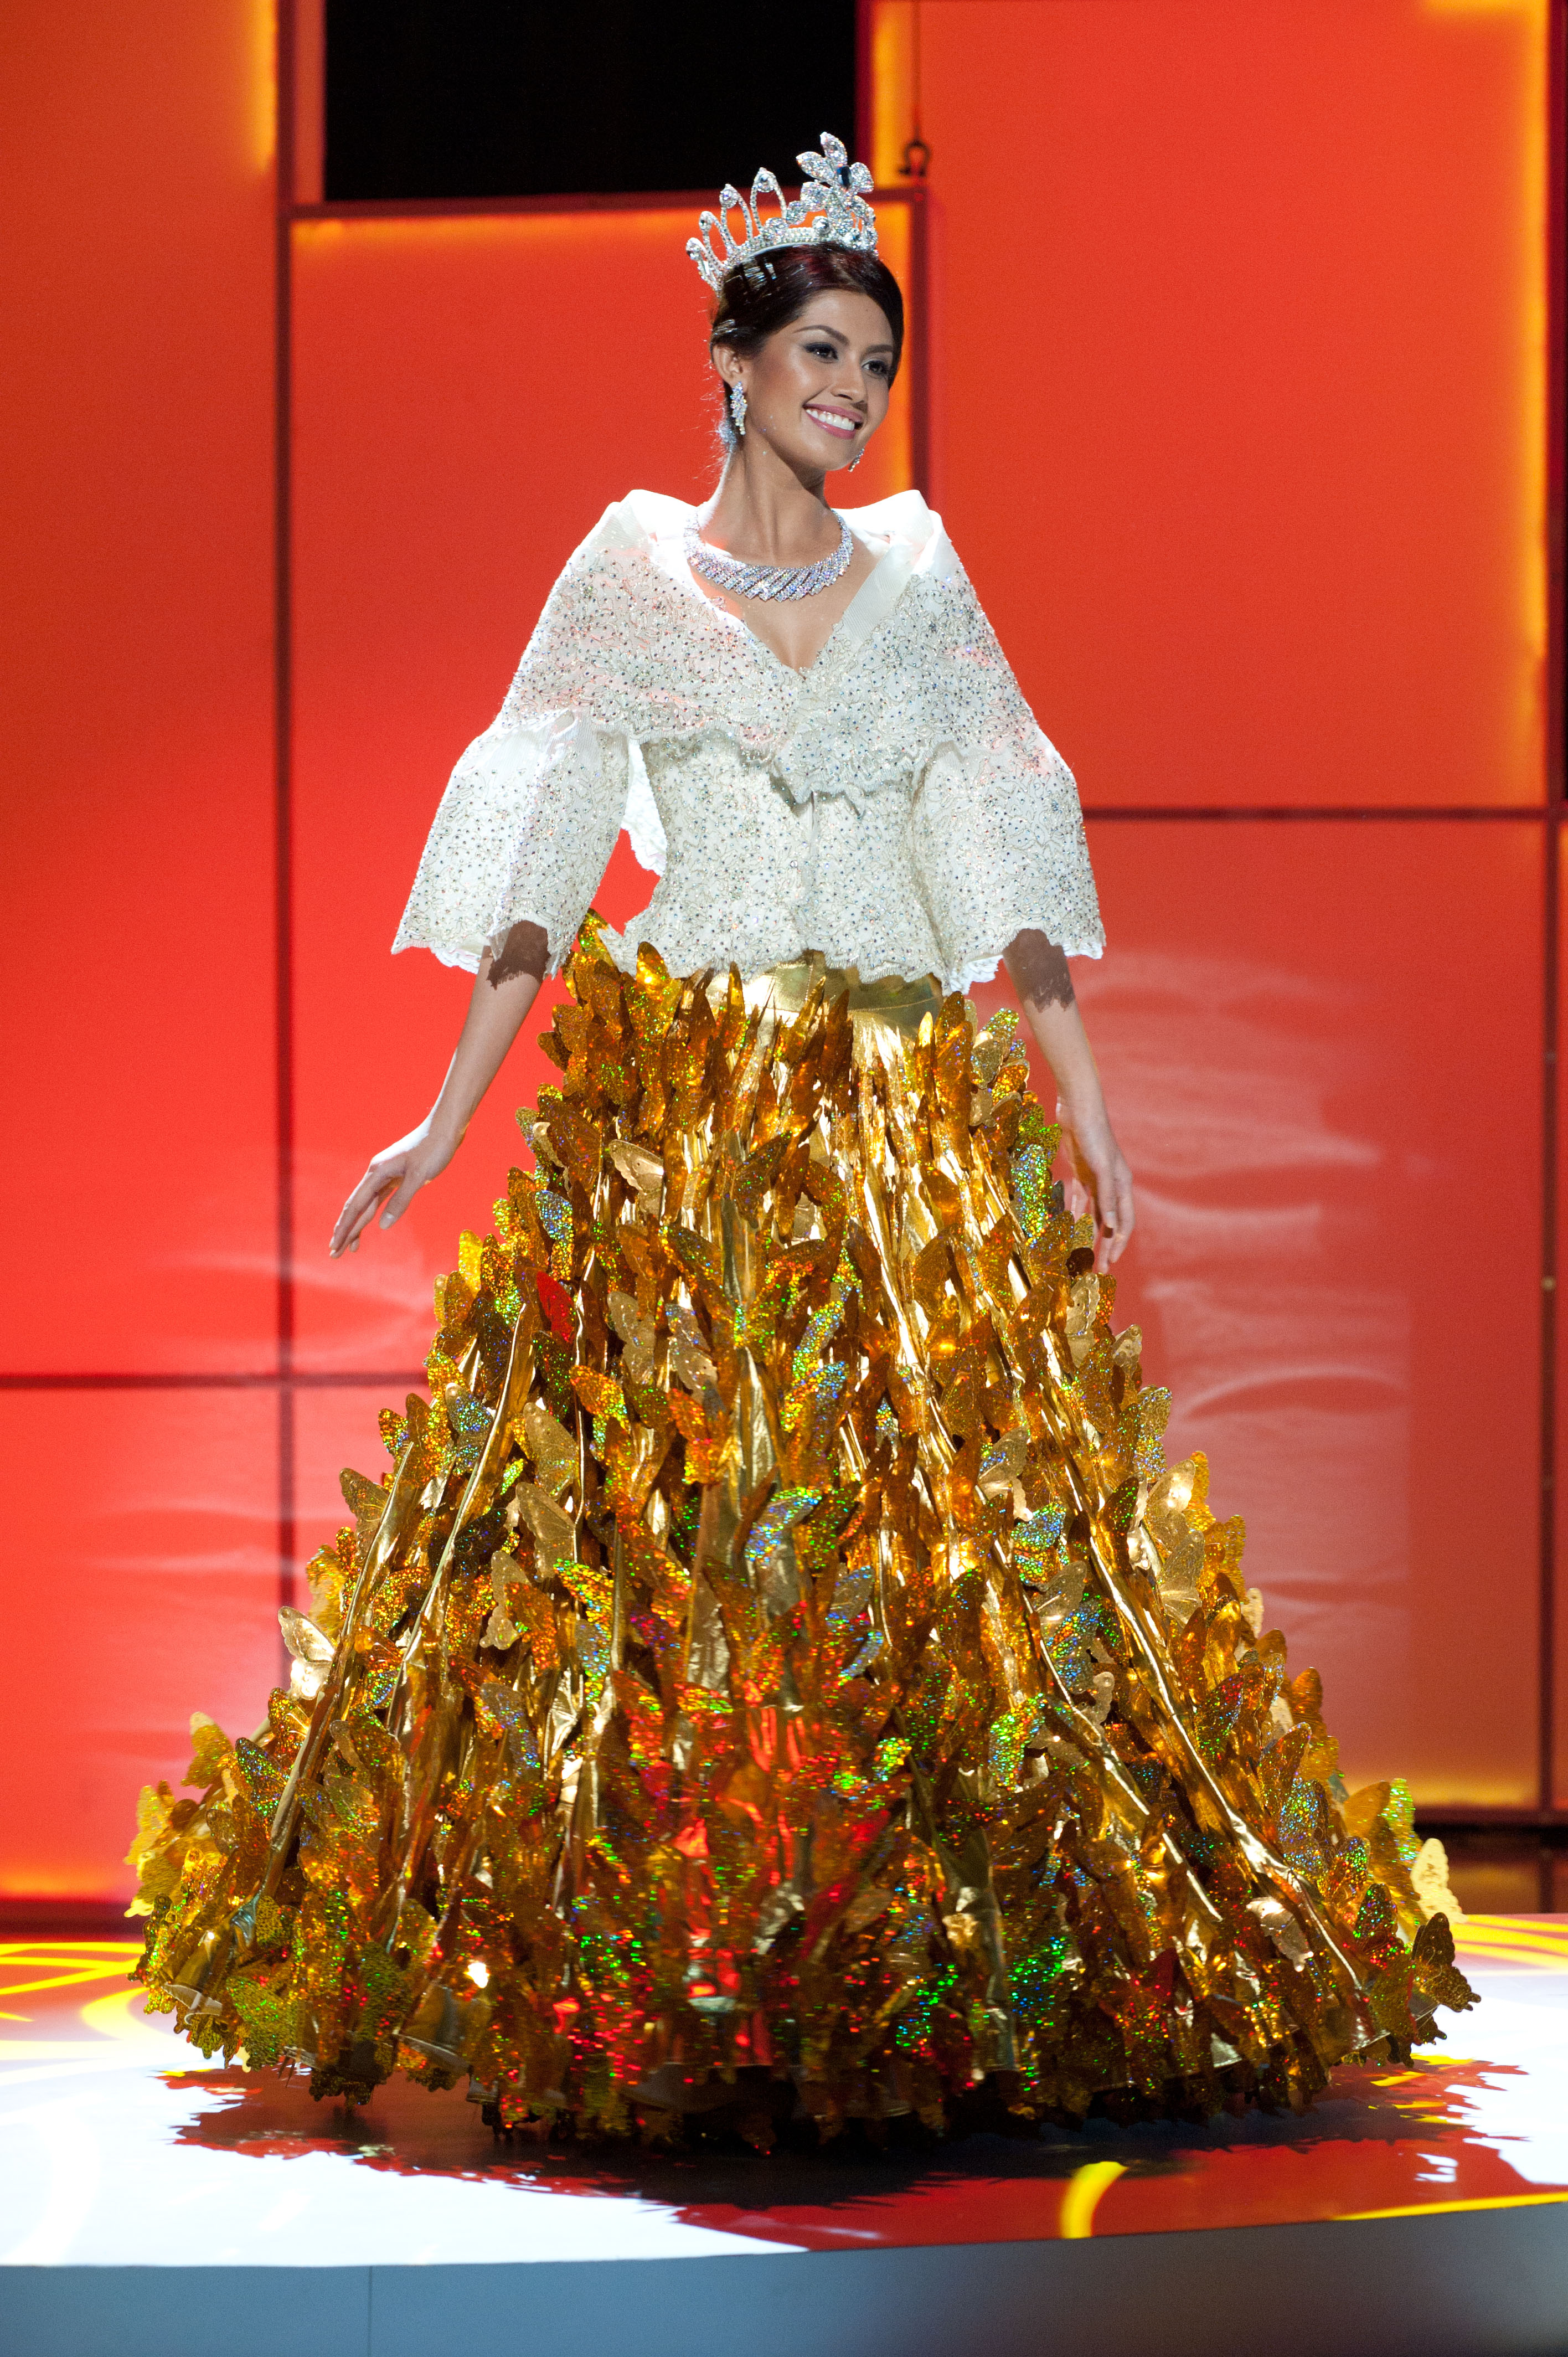 ALMOST CLOSE. Miss Philippines 2011, Shamcey Supsup pre-tapes in her National Costume onstage at Credicard Hall inBrazil on September 7, 2011.  Photo from the Miss Universe Organization